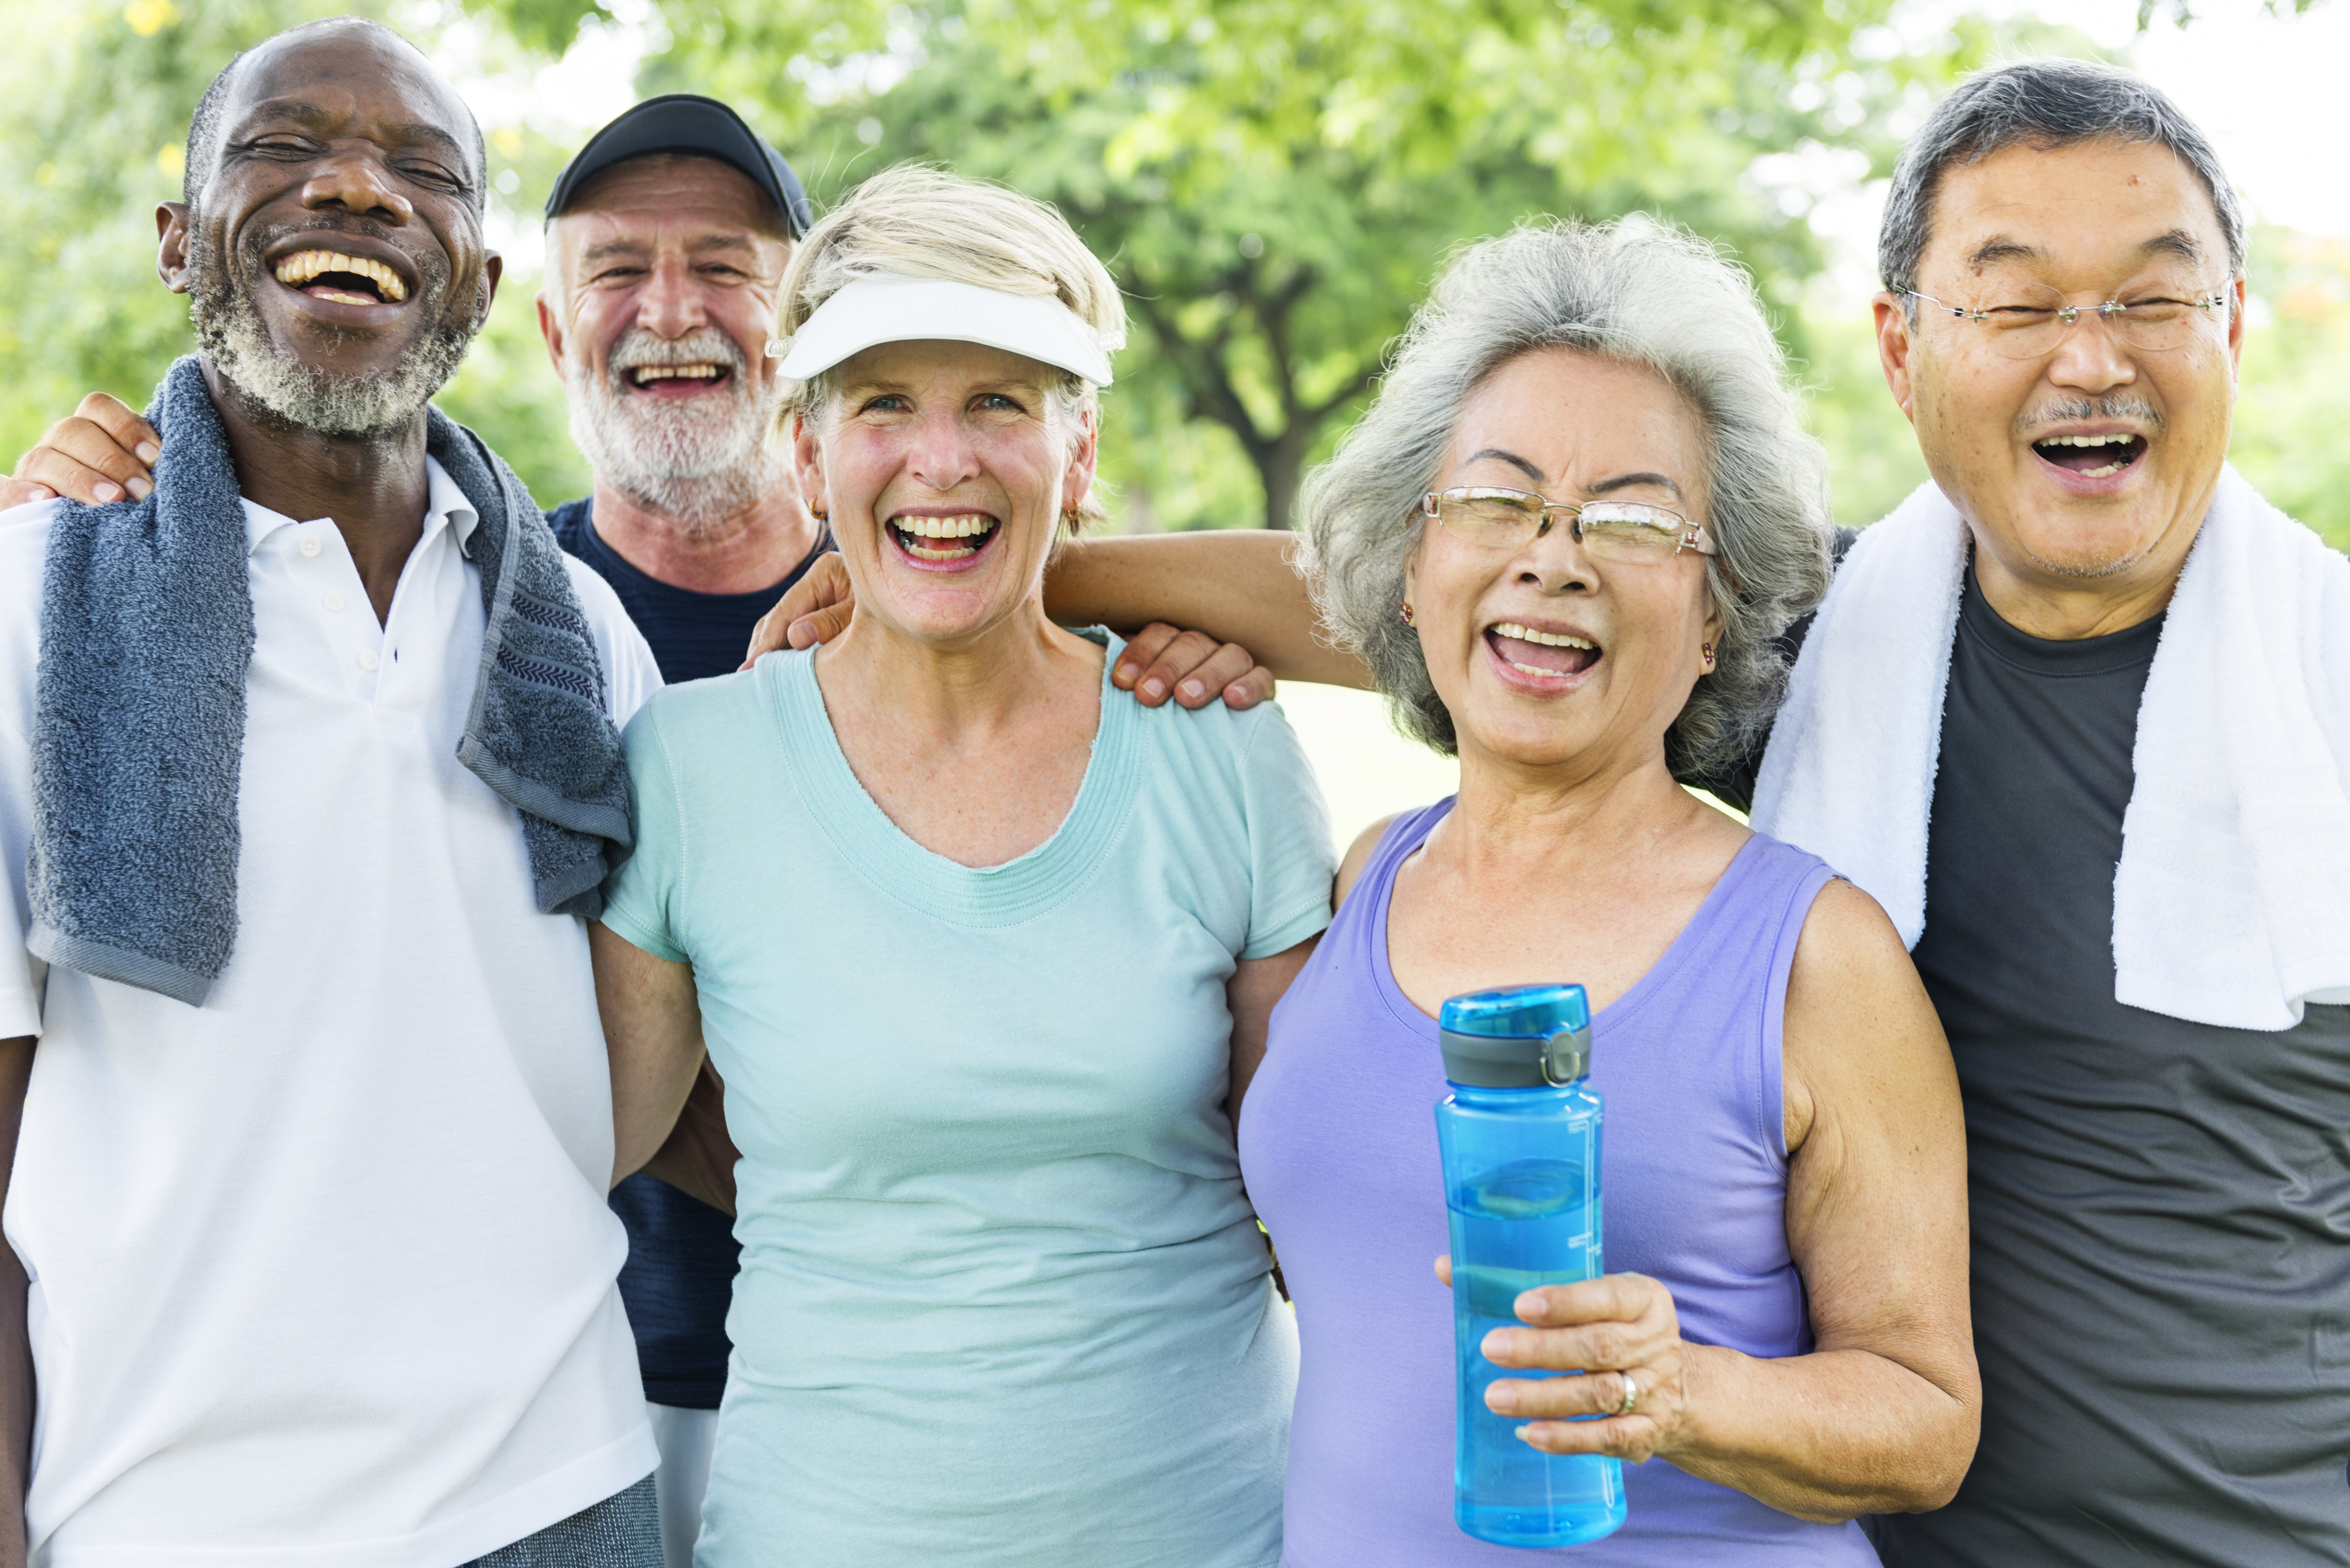 A group of seniors exercises together. Shutterstock image via Rawpixel.com